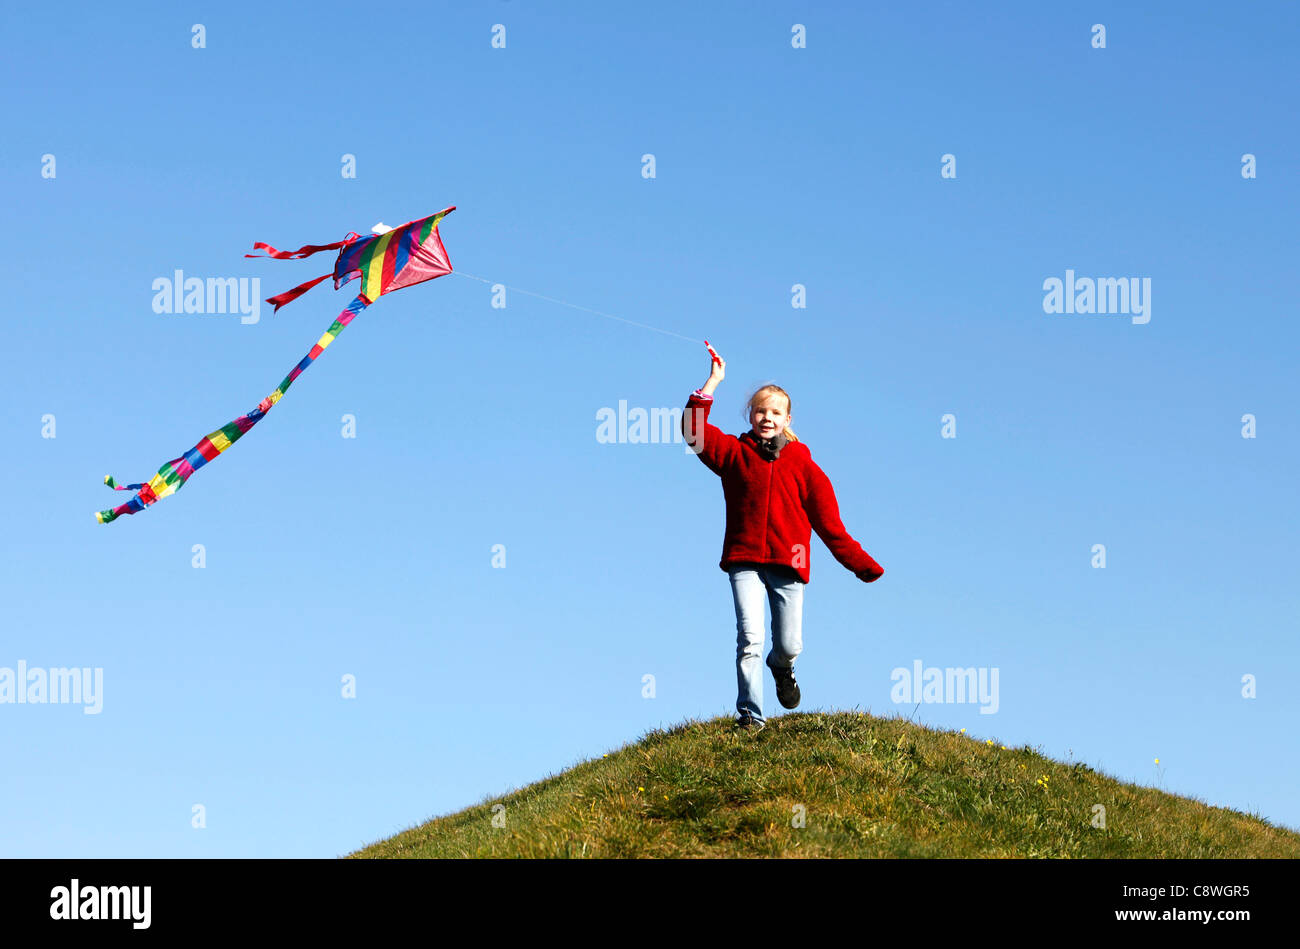 Girl, 10 years old, running with a kite, to let it fly. - Stock Image